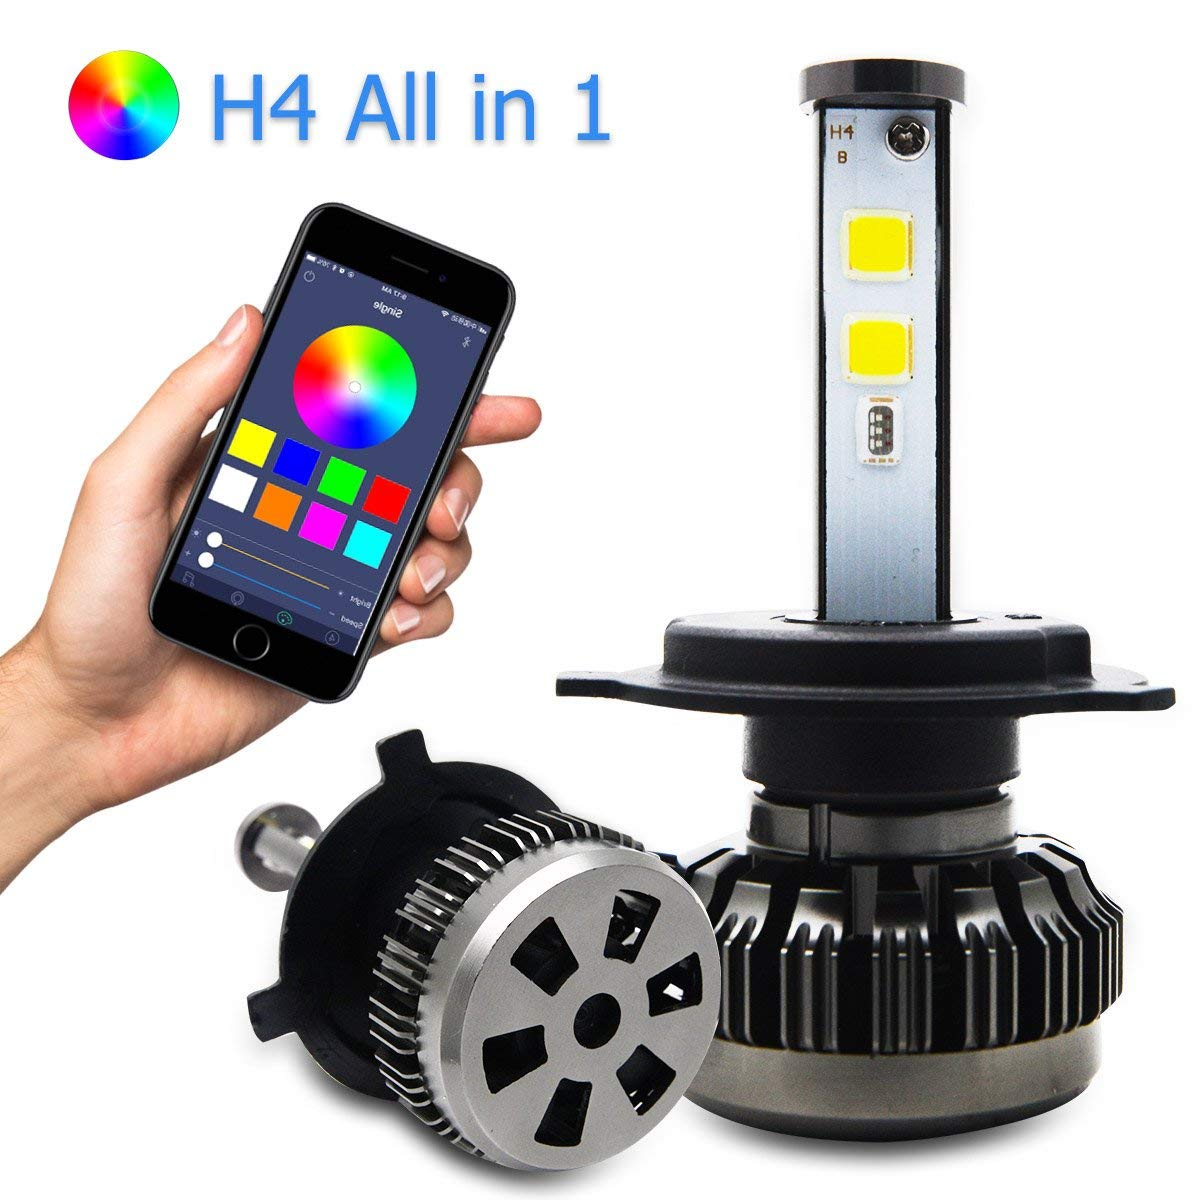 RGB Led Car Headlight Bulbs H4 Kit, Maso Adjustable Brightness Auto Headlight Bulbs 6000K-10000K 80W 8000LM Super White COB Chips Lamps with Smart App control Pack of 2 pcs